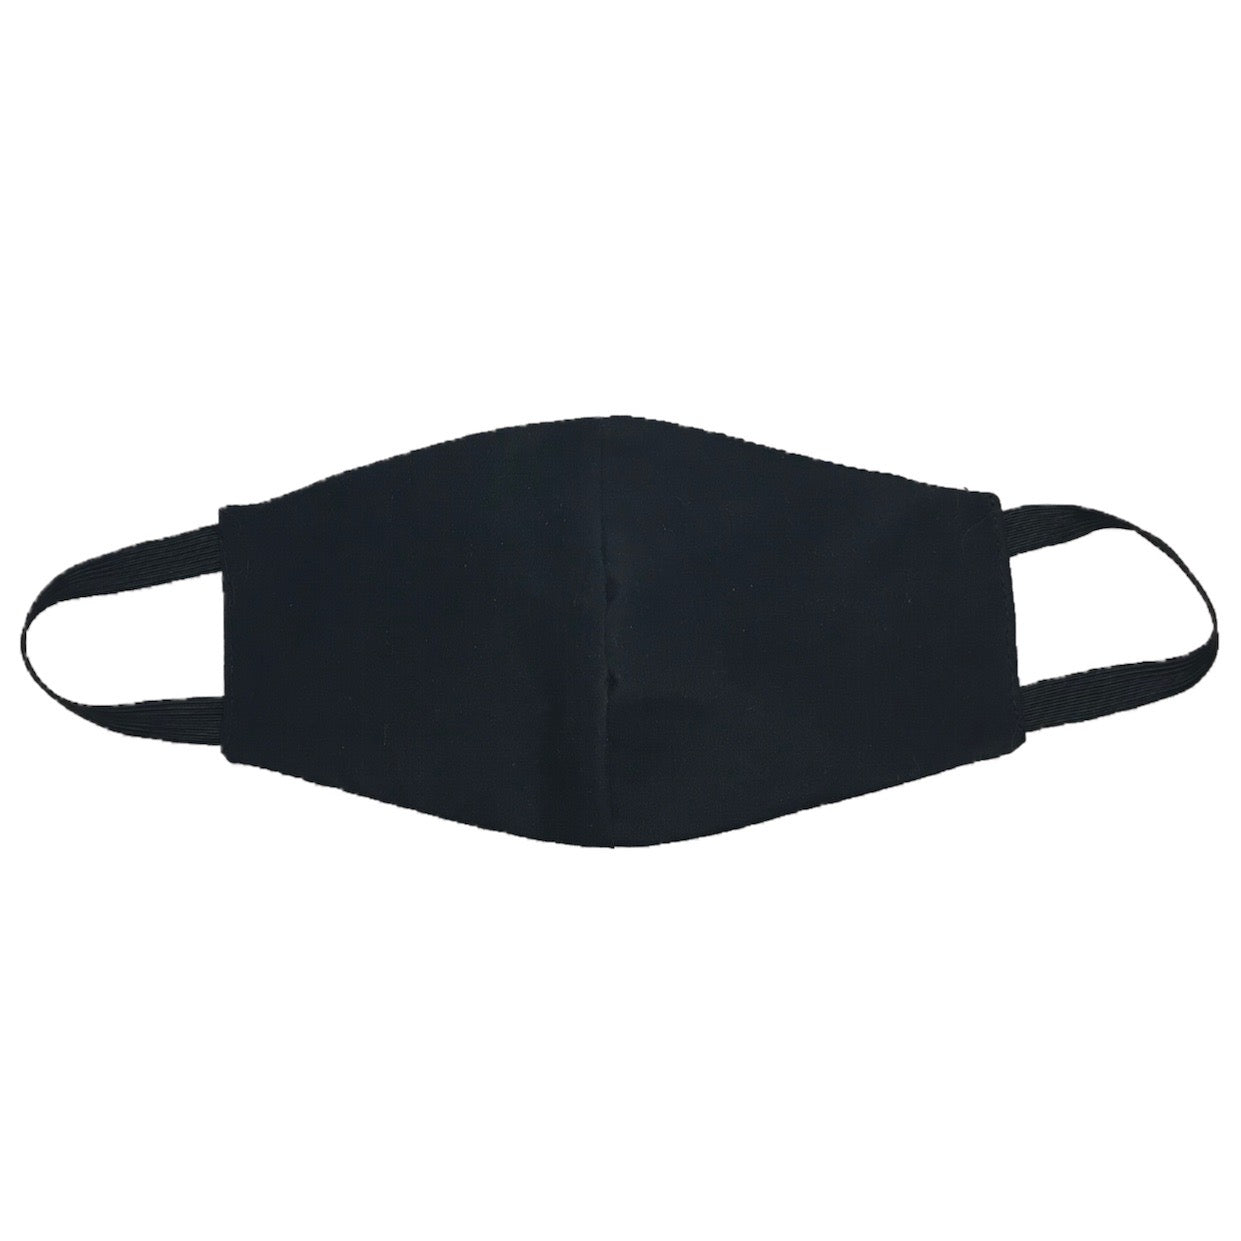 PROTECTIVE FACEMASK (ALL BLACK)